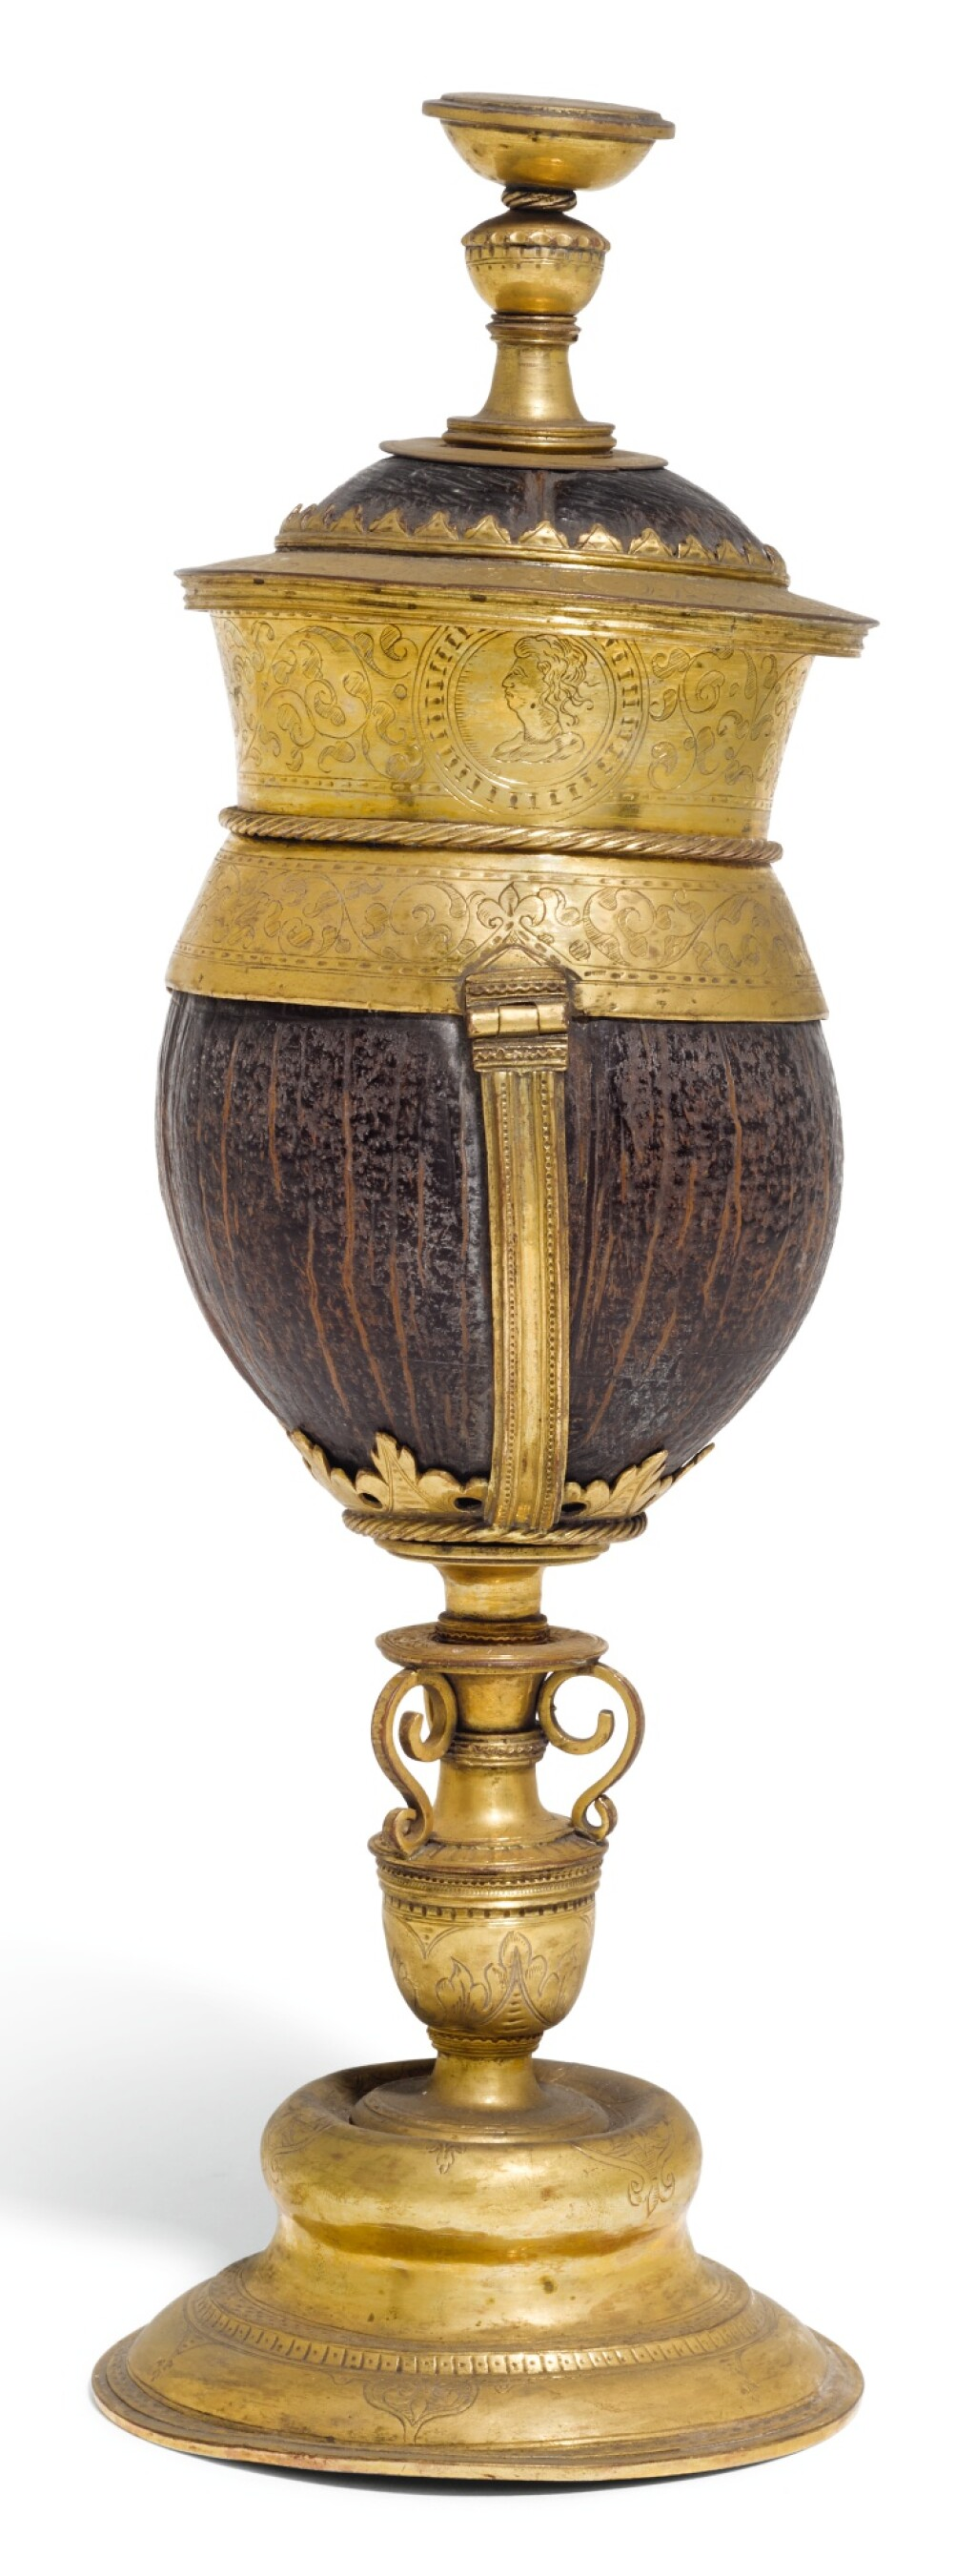 A GERMANIC GILT-COPPER MOUNTED COCONUT CUP AND COVER, UNMARKED, CIRCA 1580